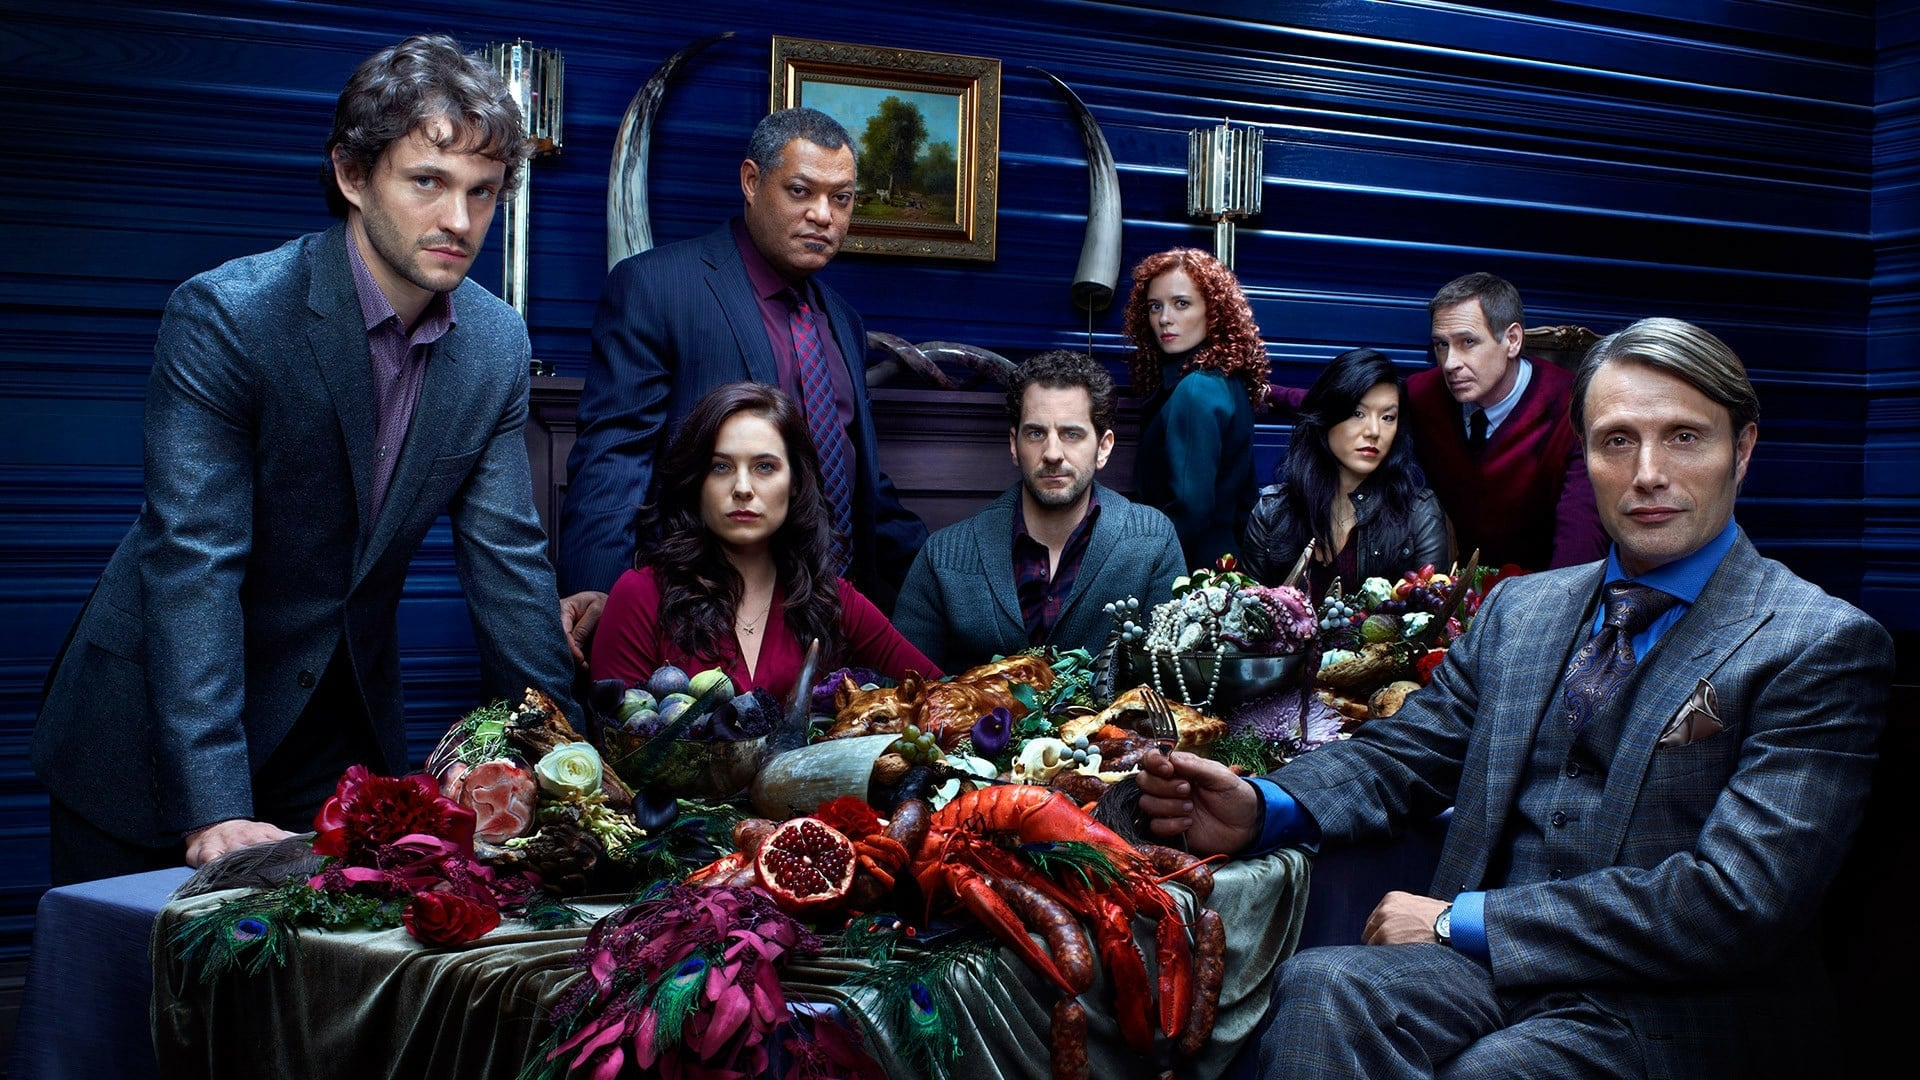 NBC renews 'Hannibal' and 'About a Boy', cancels 'Revolution' and 'Community'